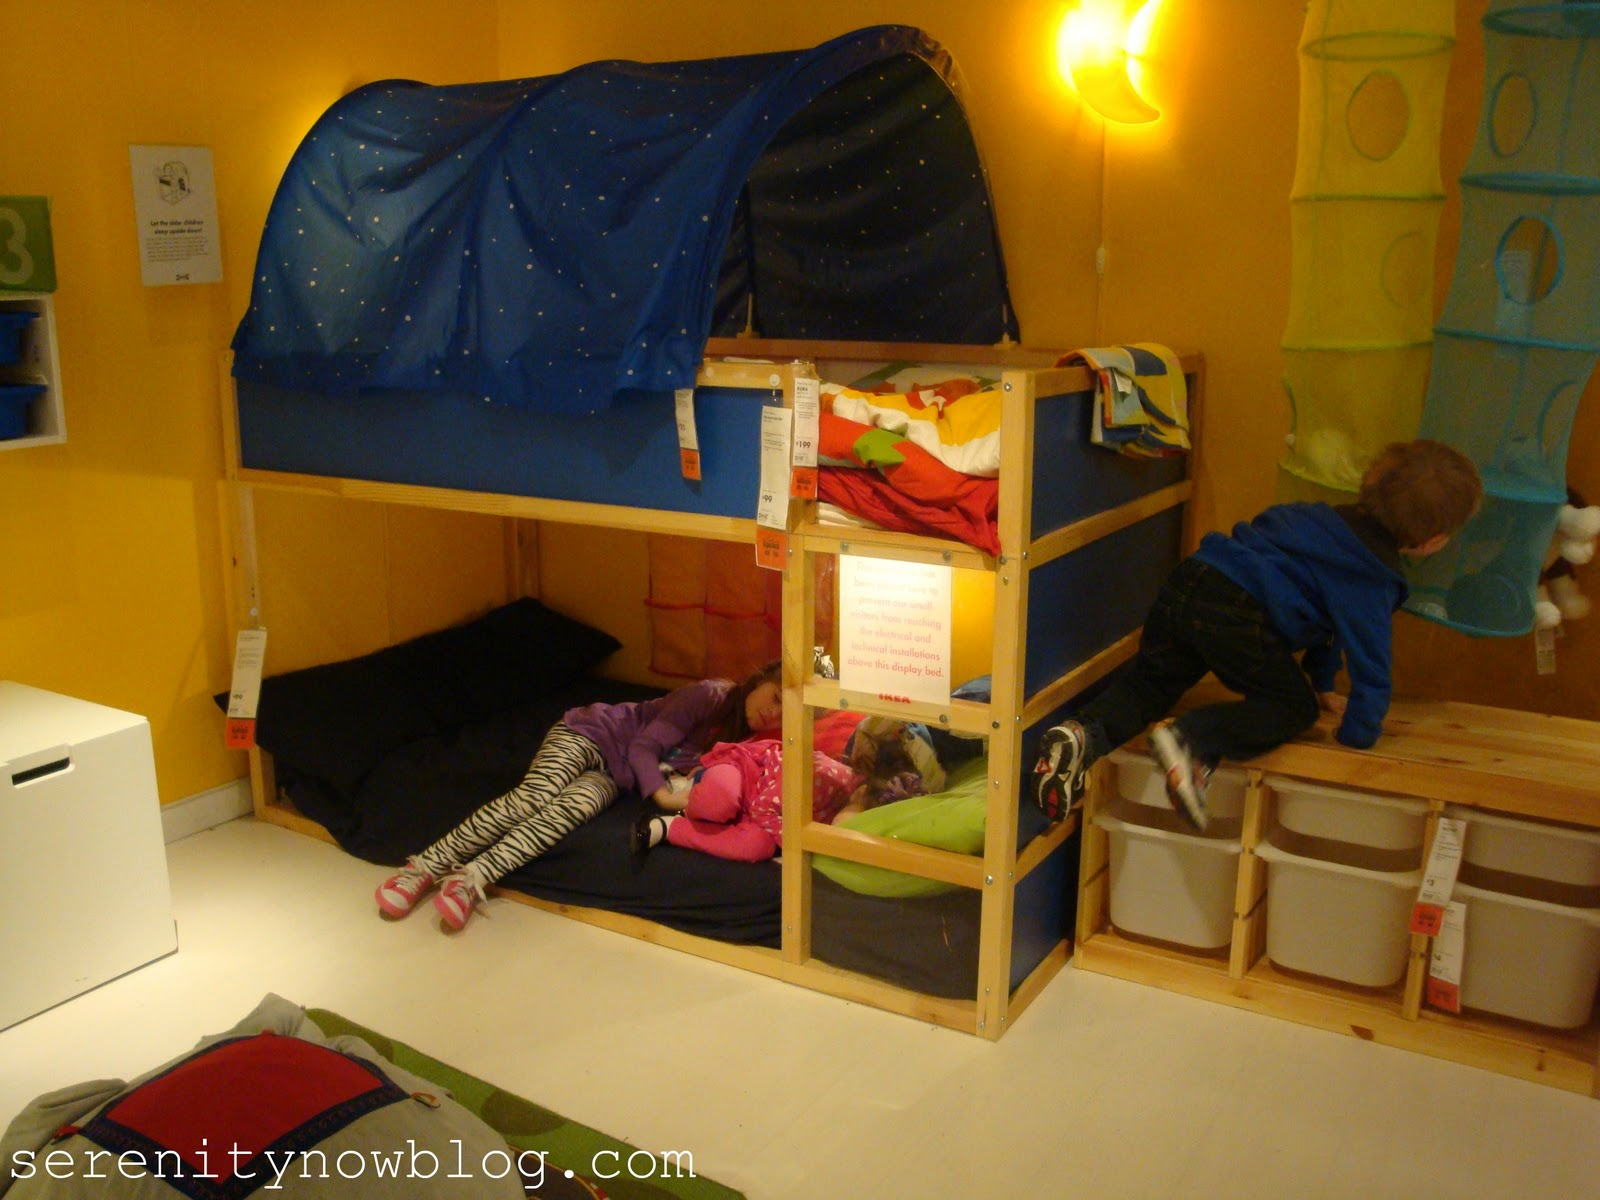 Serenity now ikea decorating inspiration our shopping fun Bunk bed boys room